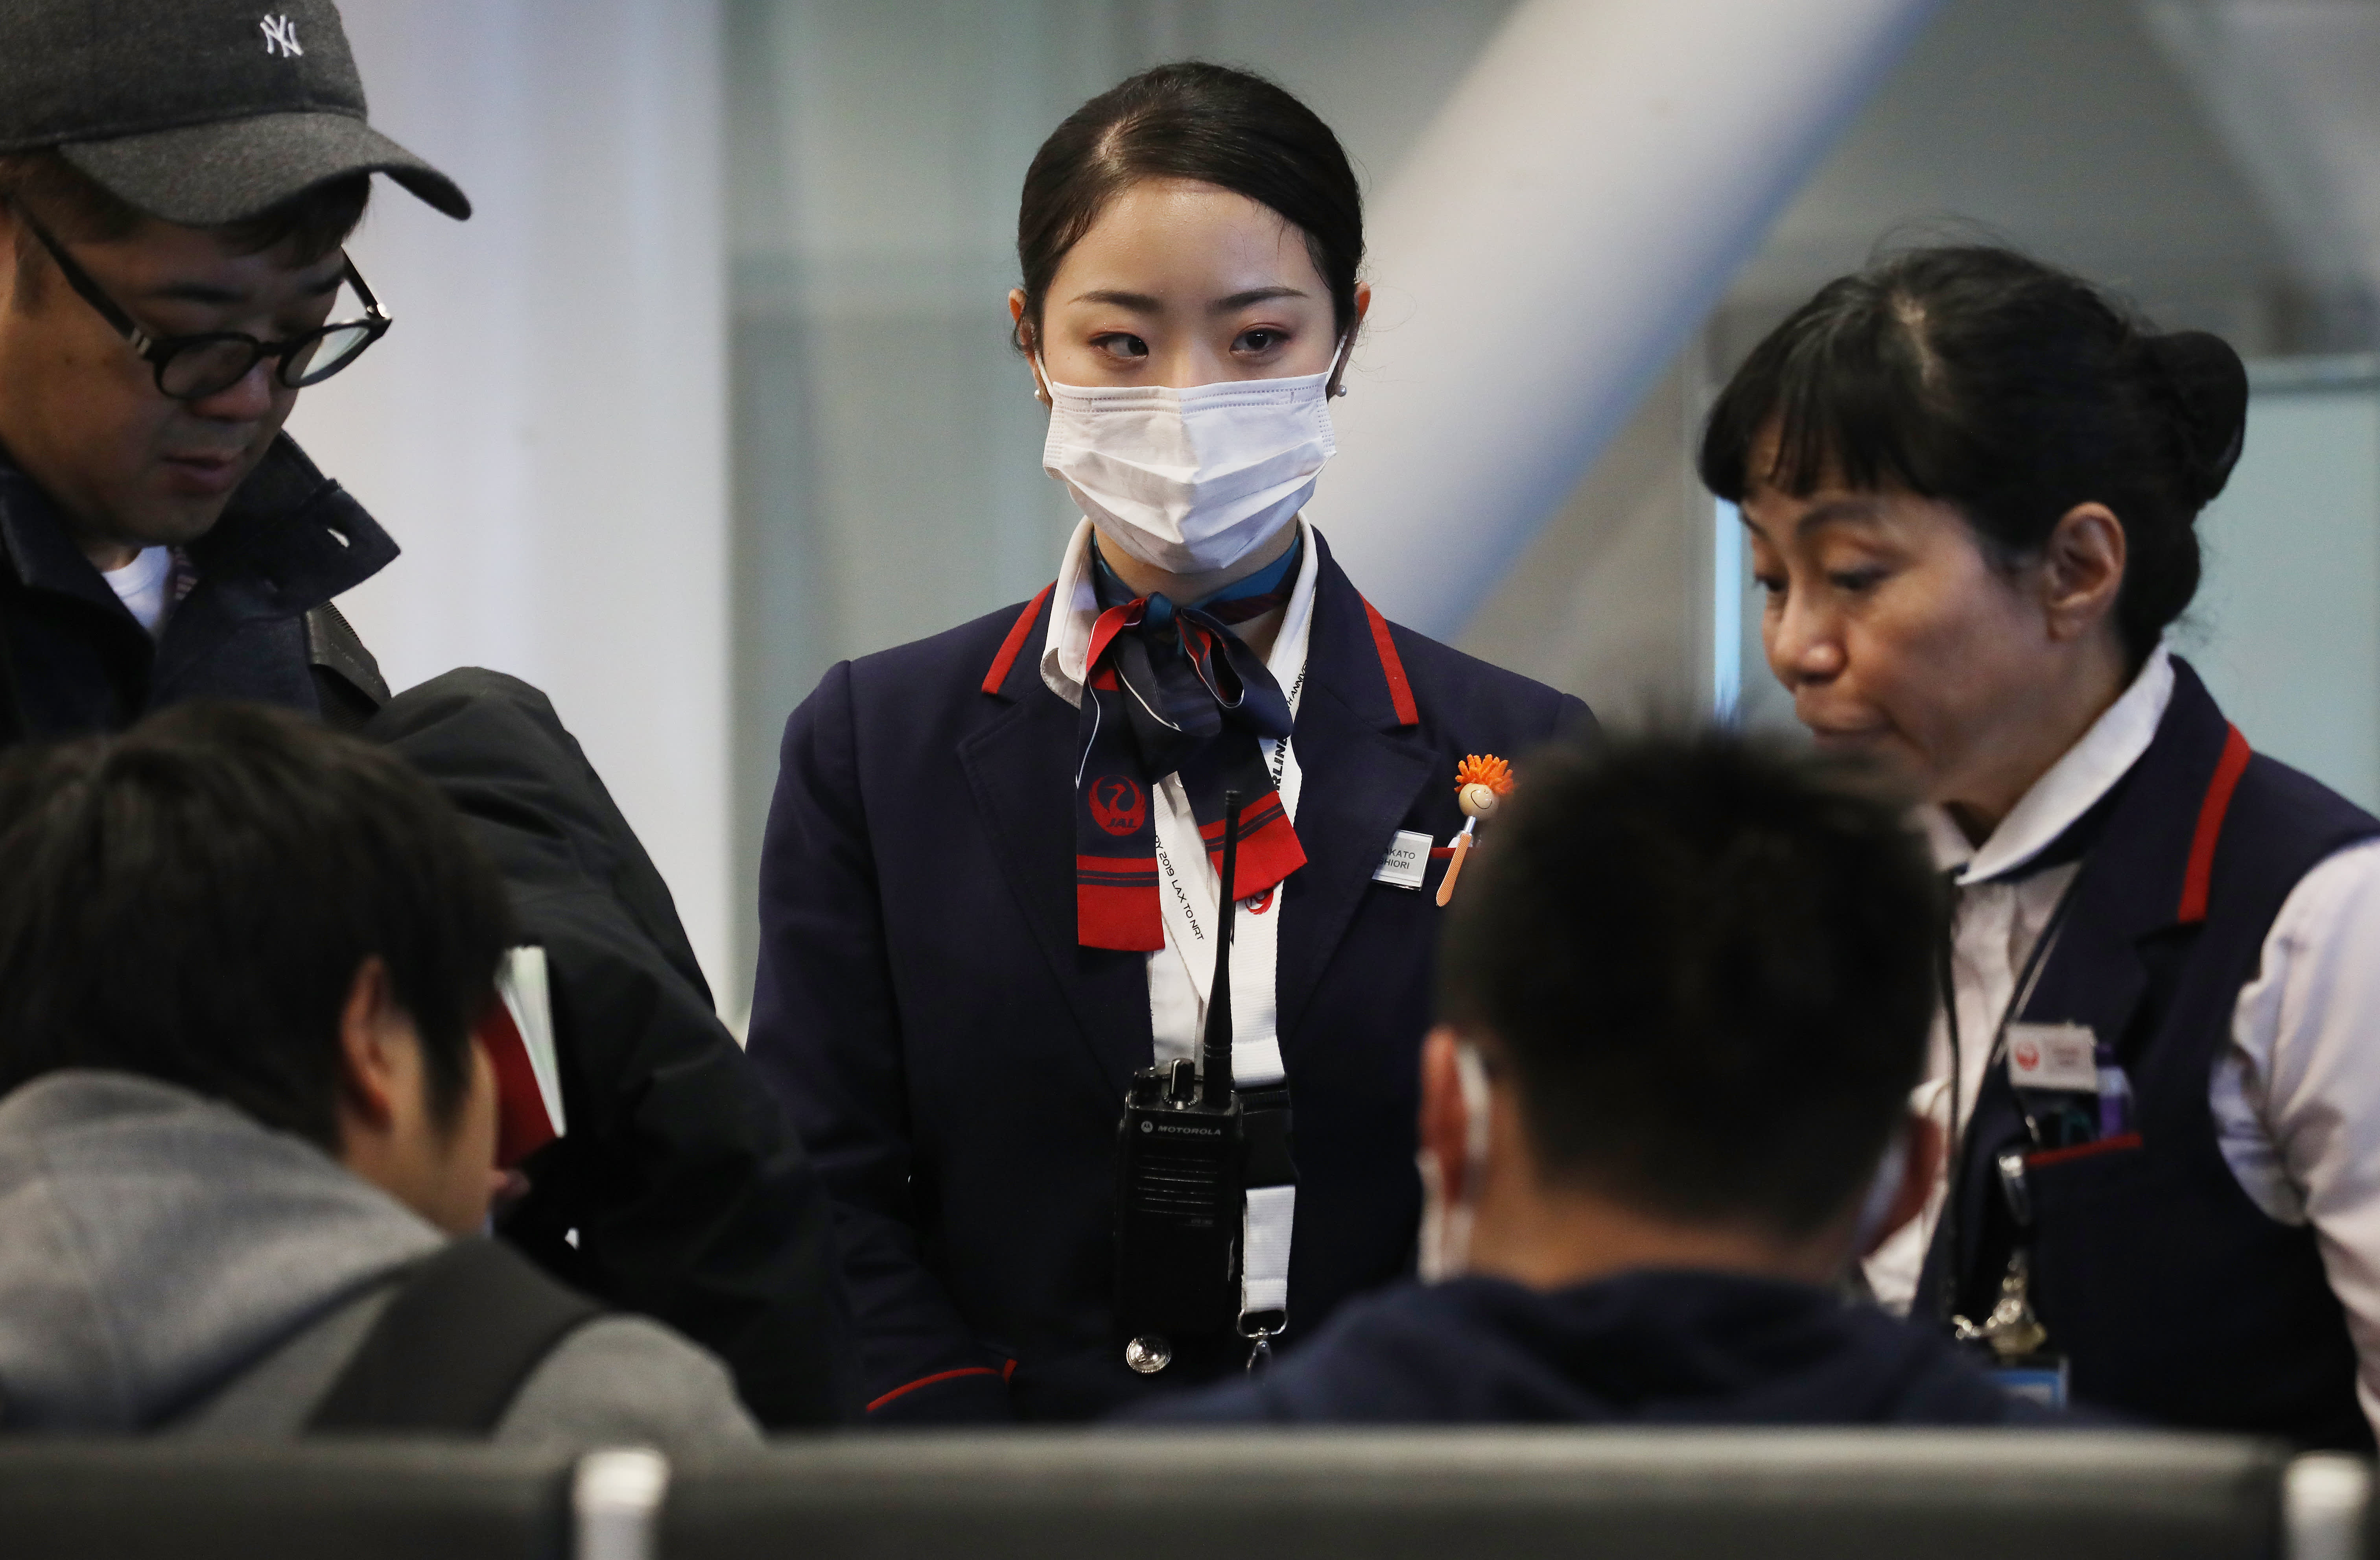 Global stock markets roiled as China's coronavirus spreads